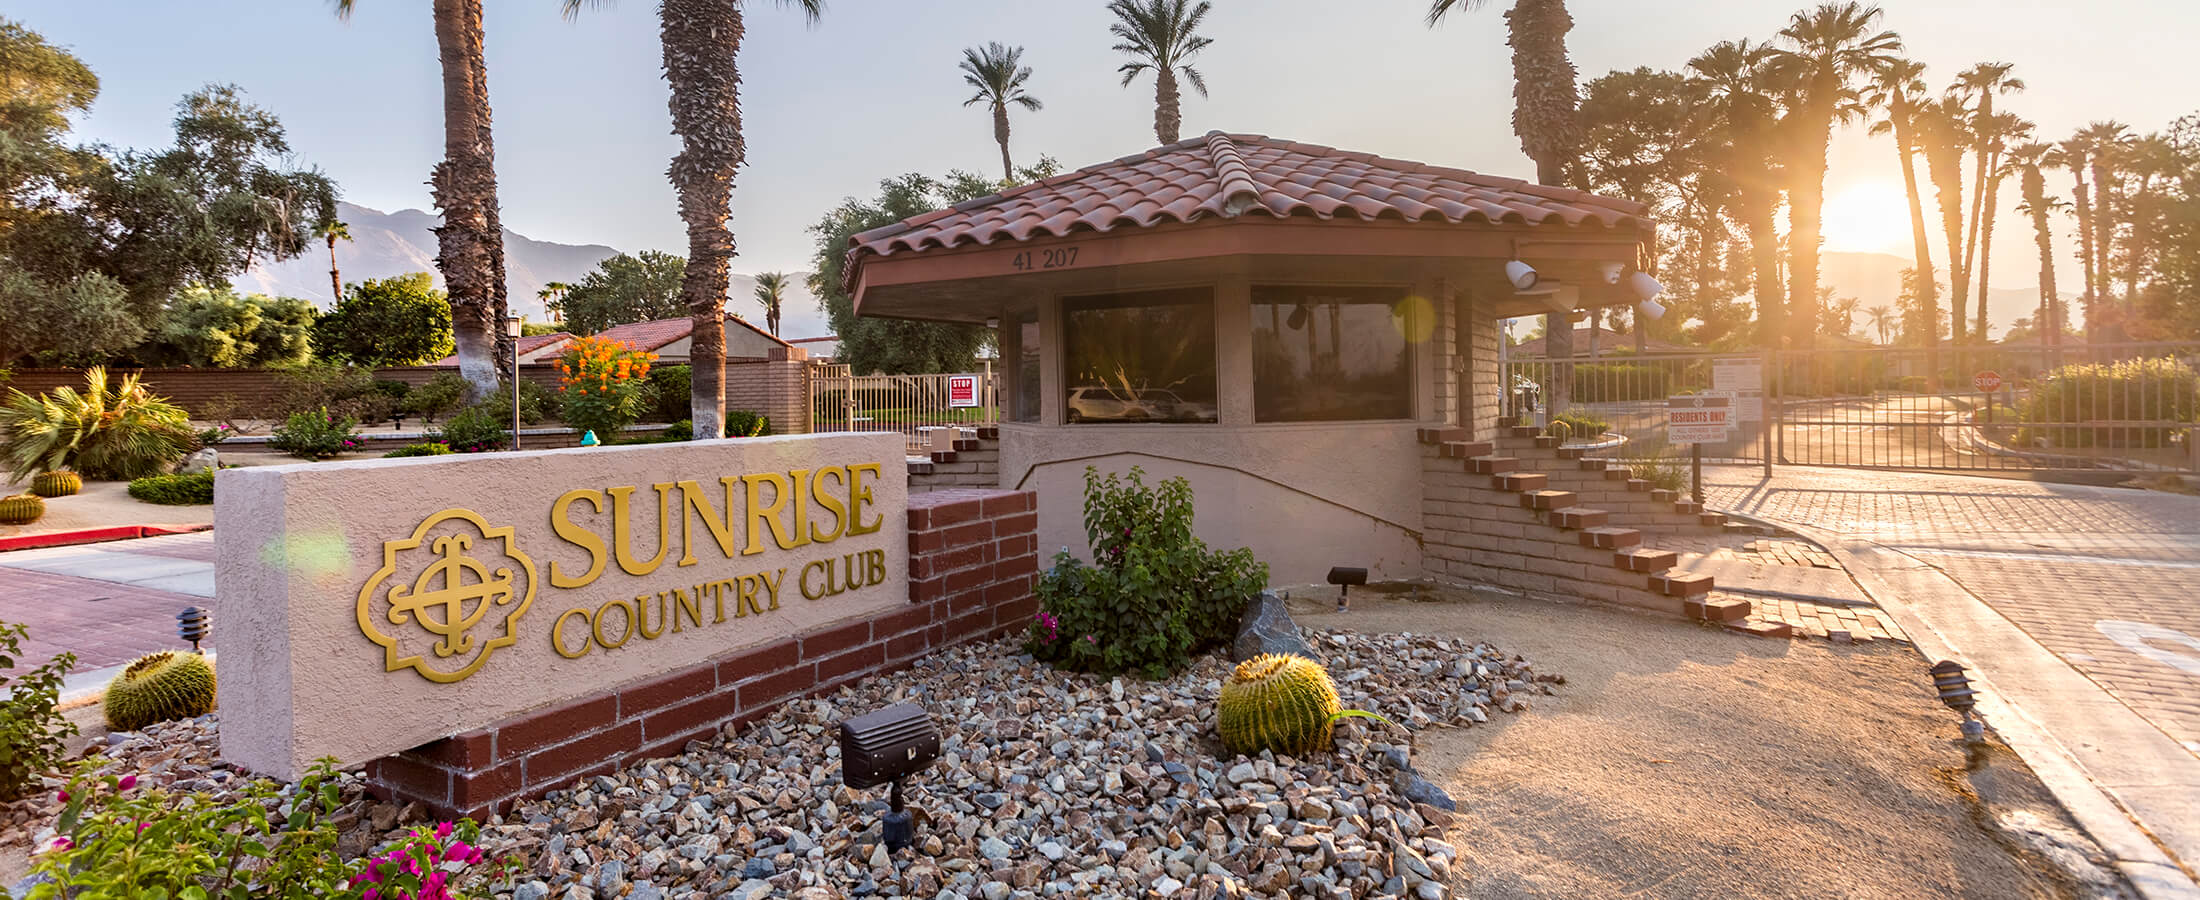 Sunrise Country Club Rancho Mirage Homes for Sale